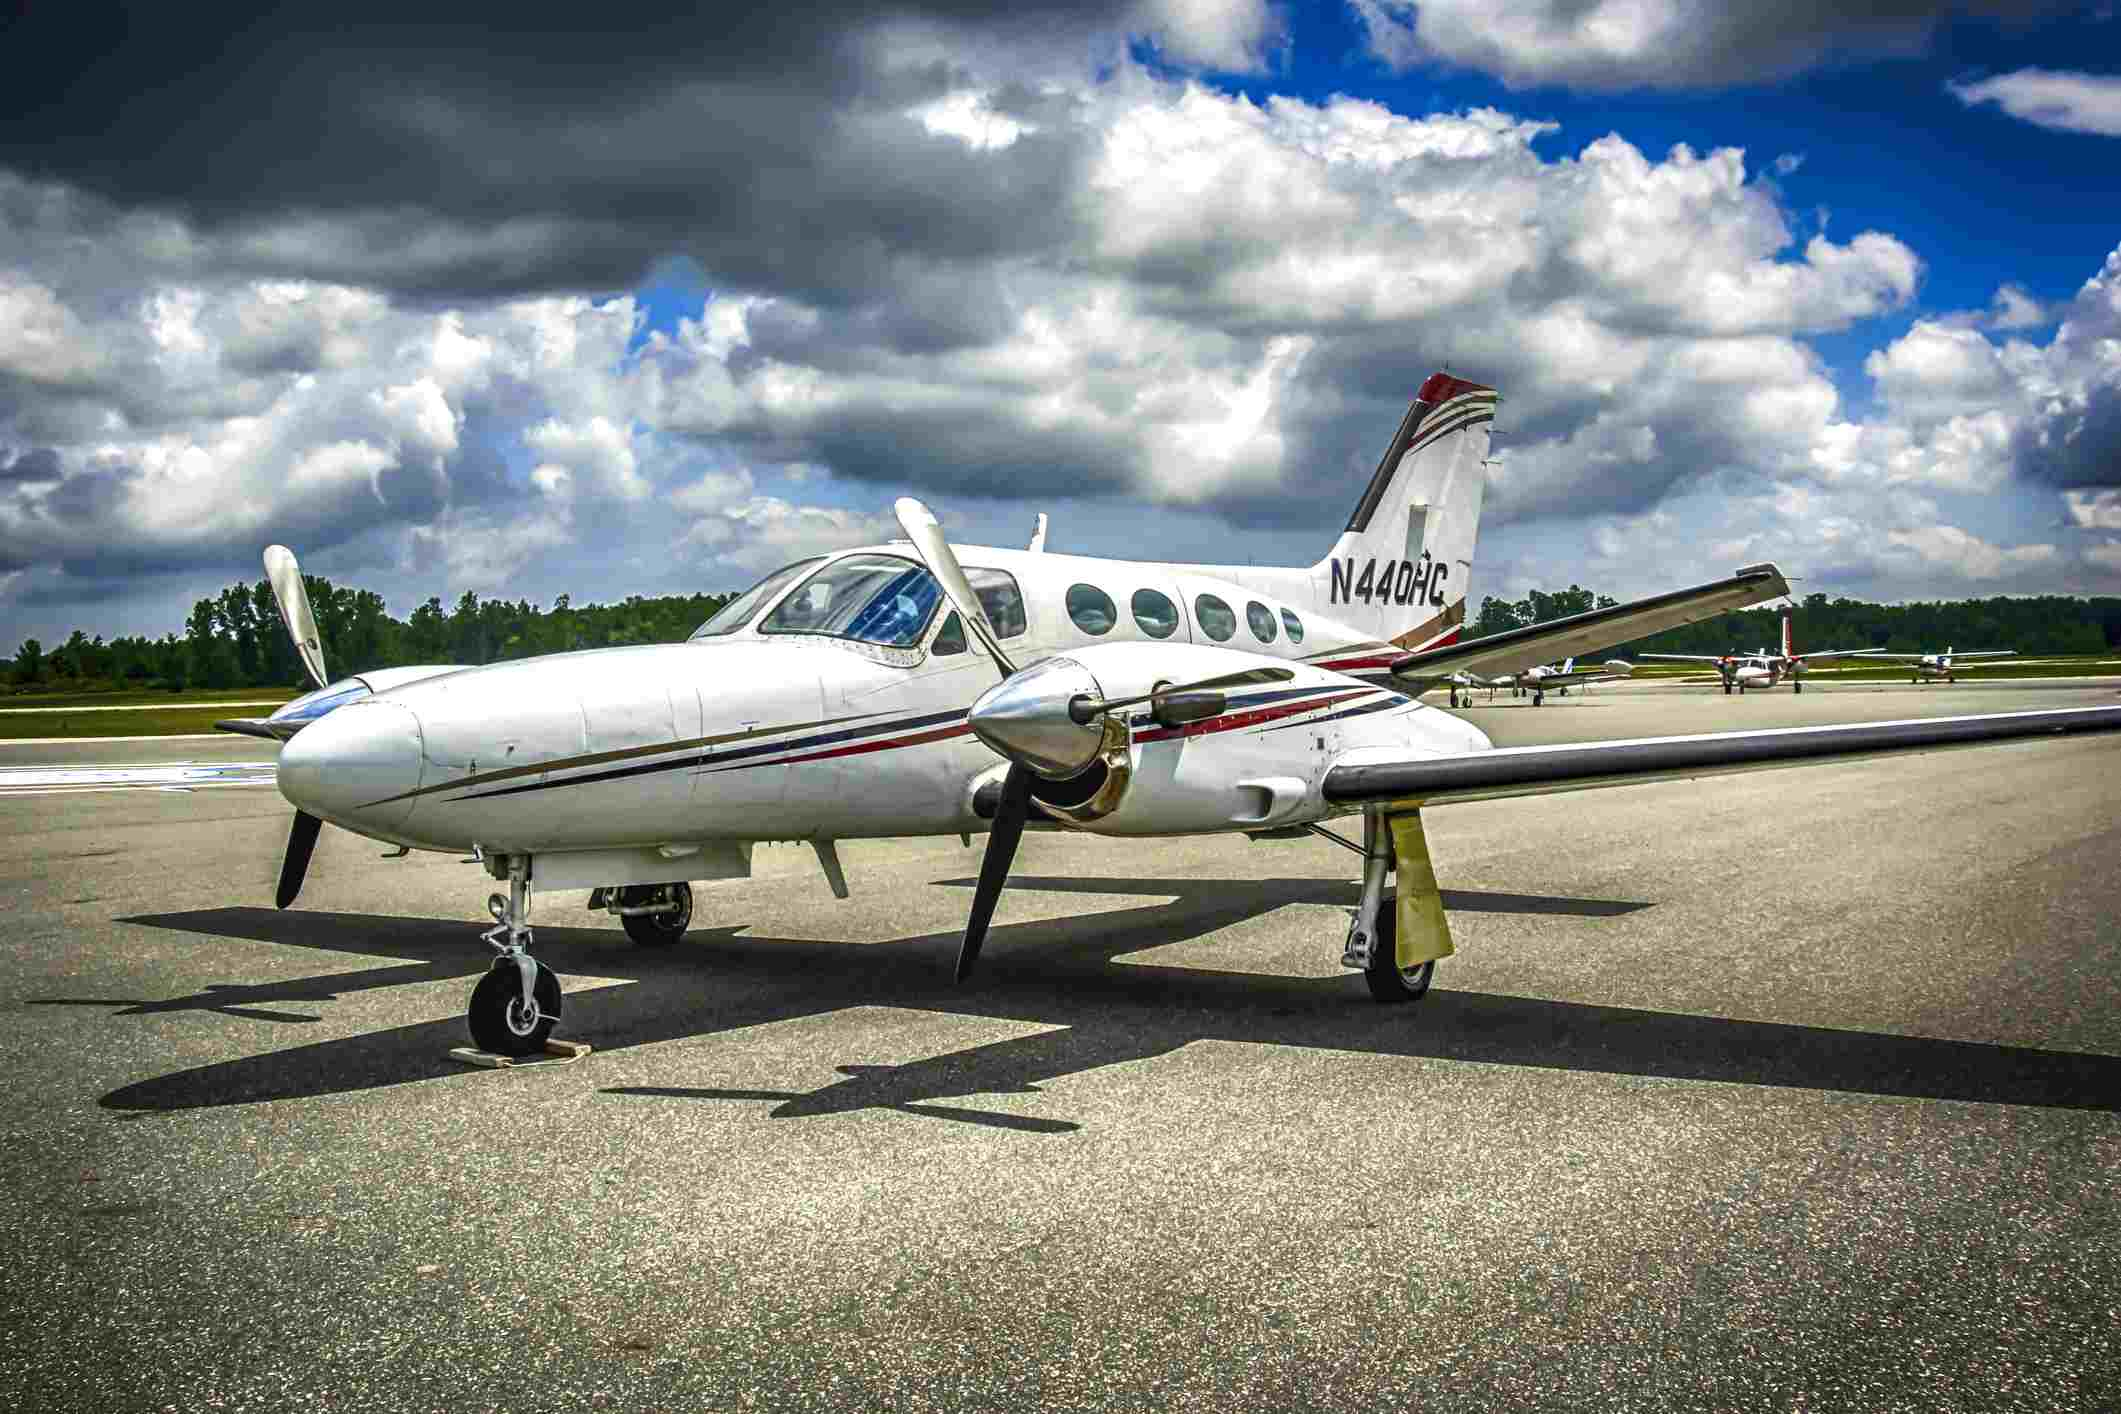 Aircraft Coverage Under Your Liability Policy